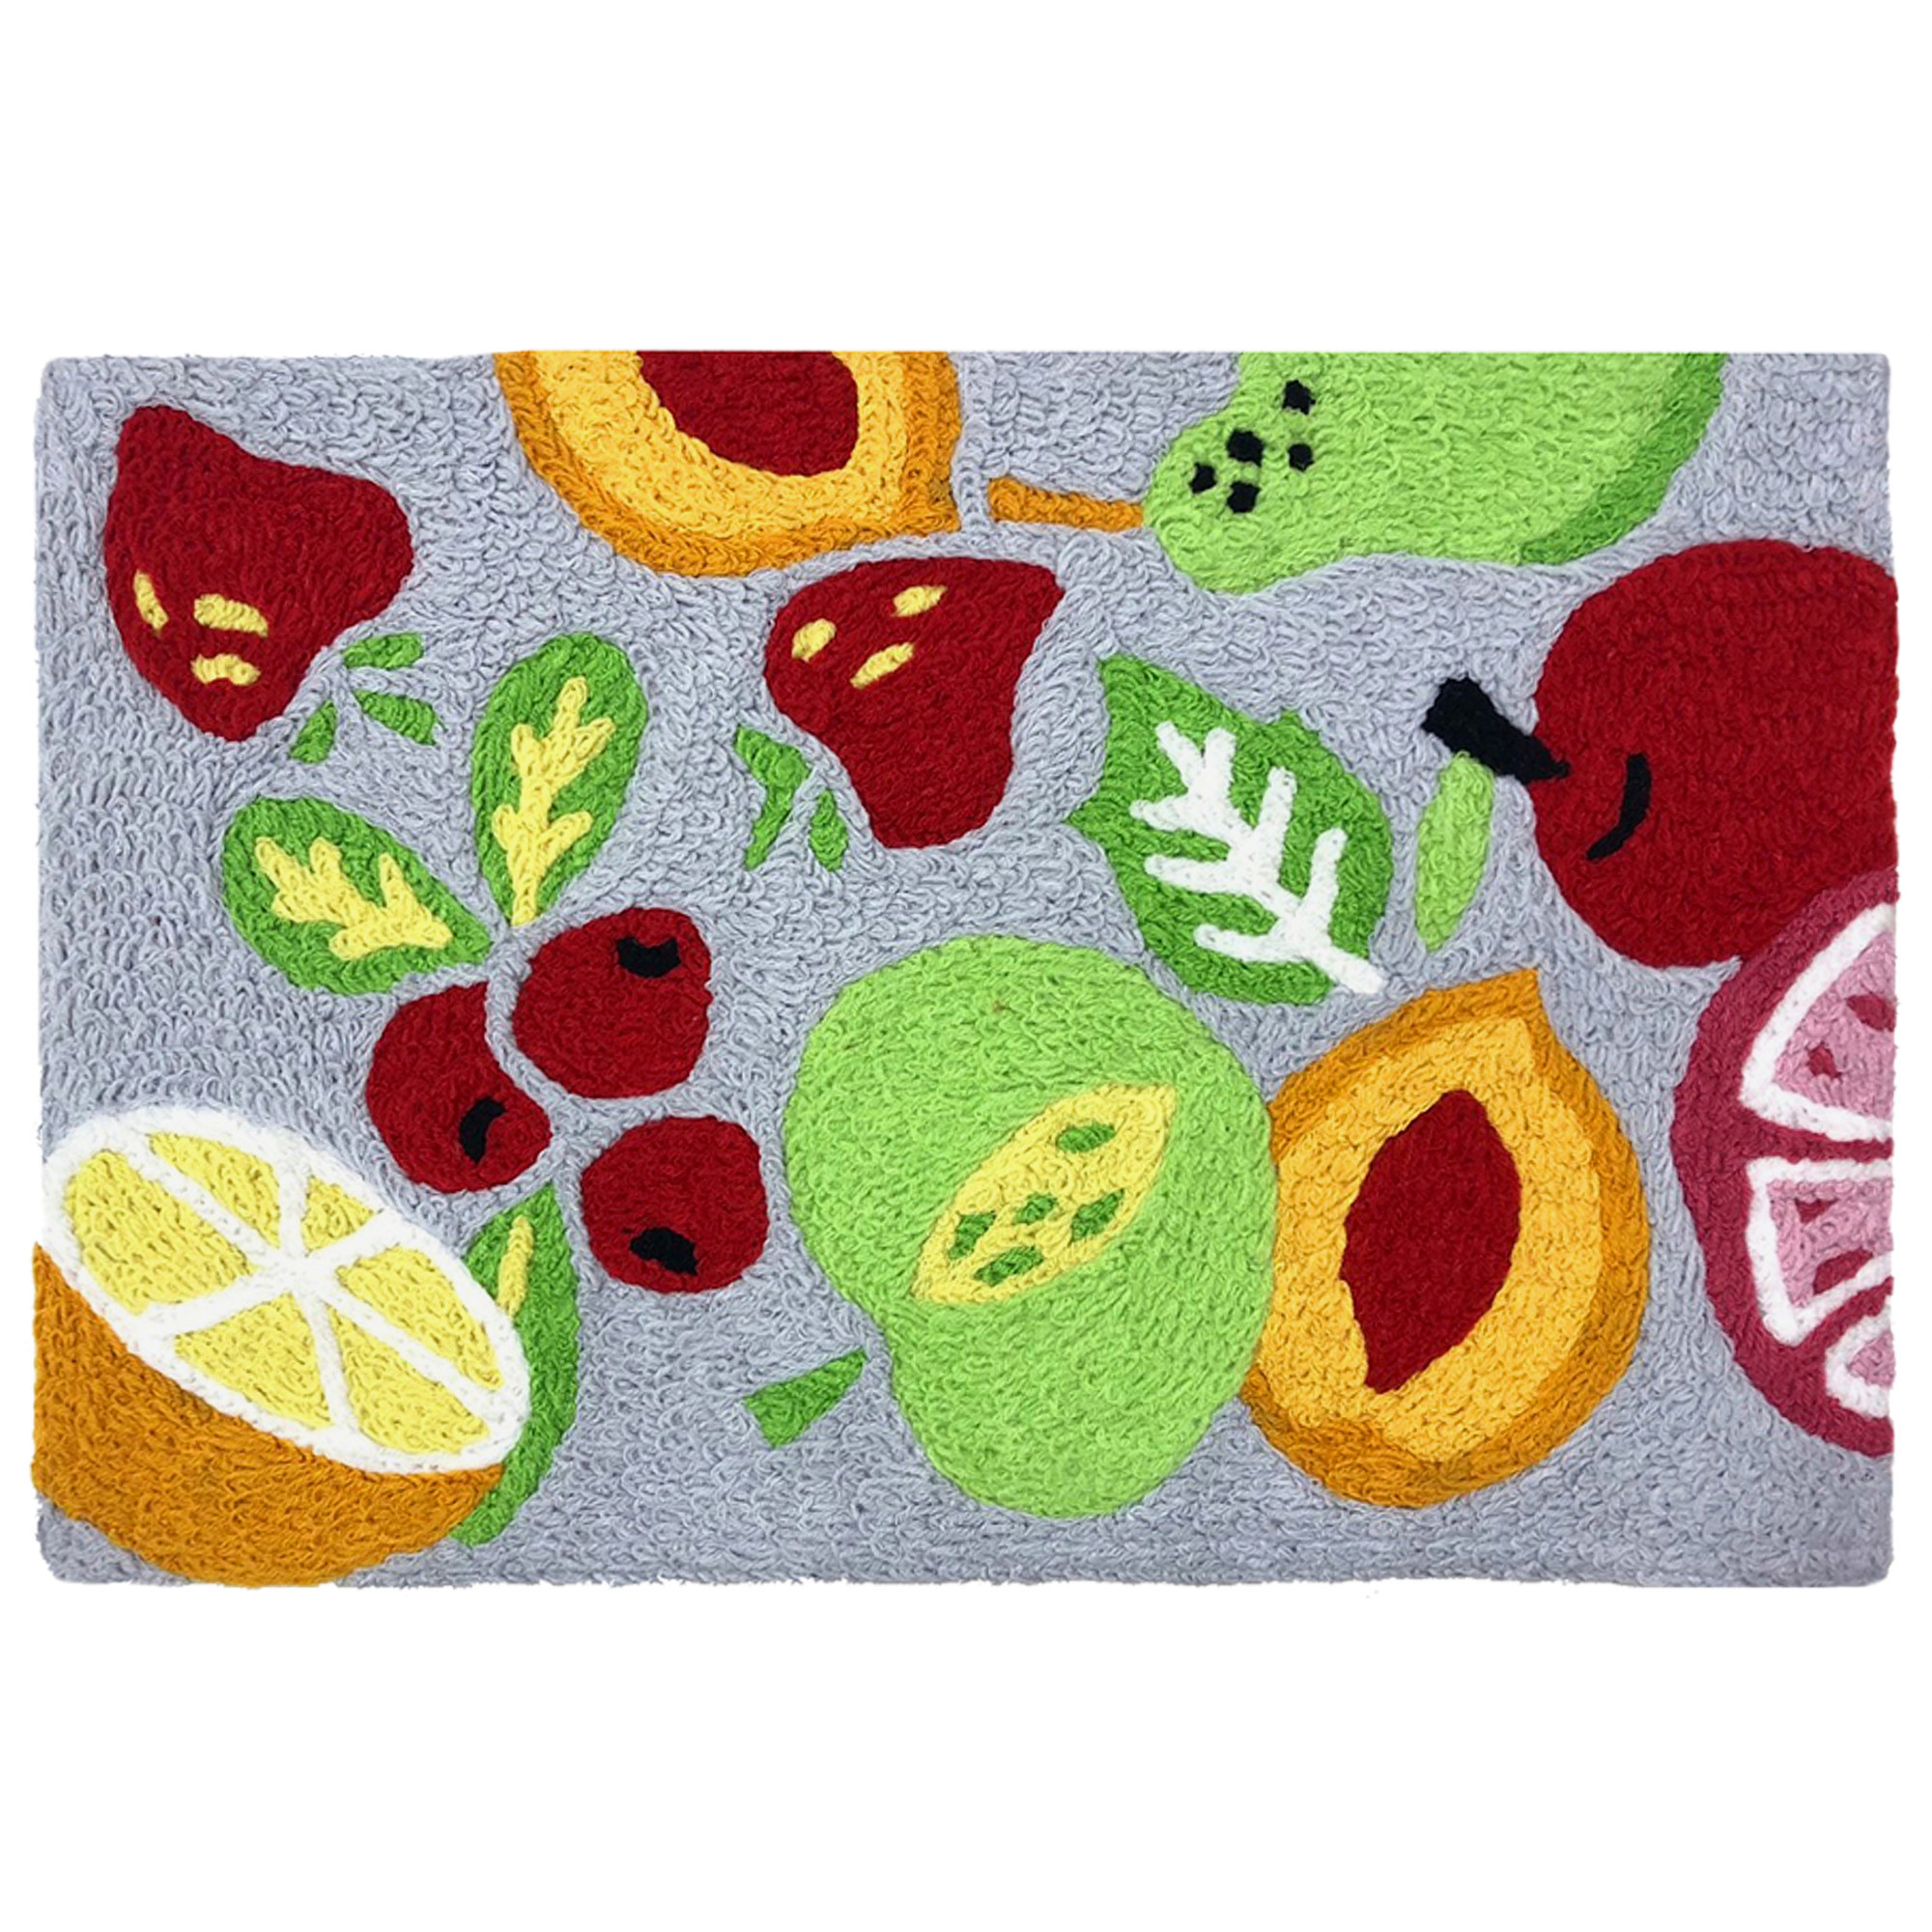 The fruit has been tossed for a delicious kitchen rug design. Vibrant hues will keep the fruit fresh on this machine washable rug. This Jellybean® accent rug is made of polyester fibers and suitable for indoor and outdoor placement.